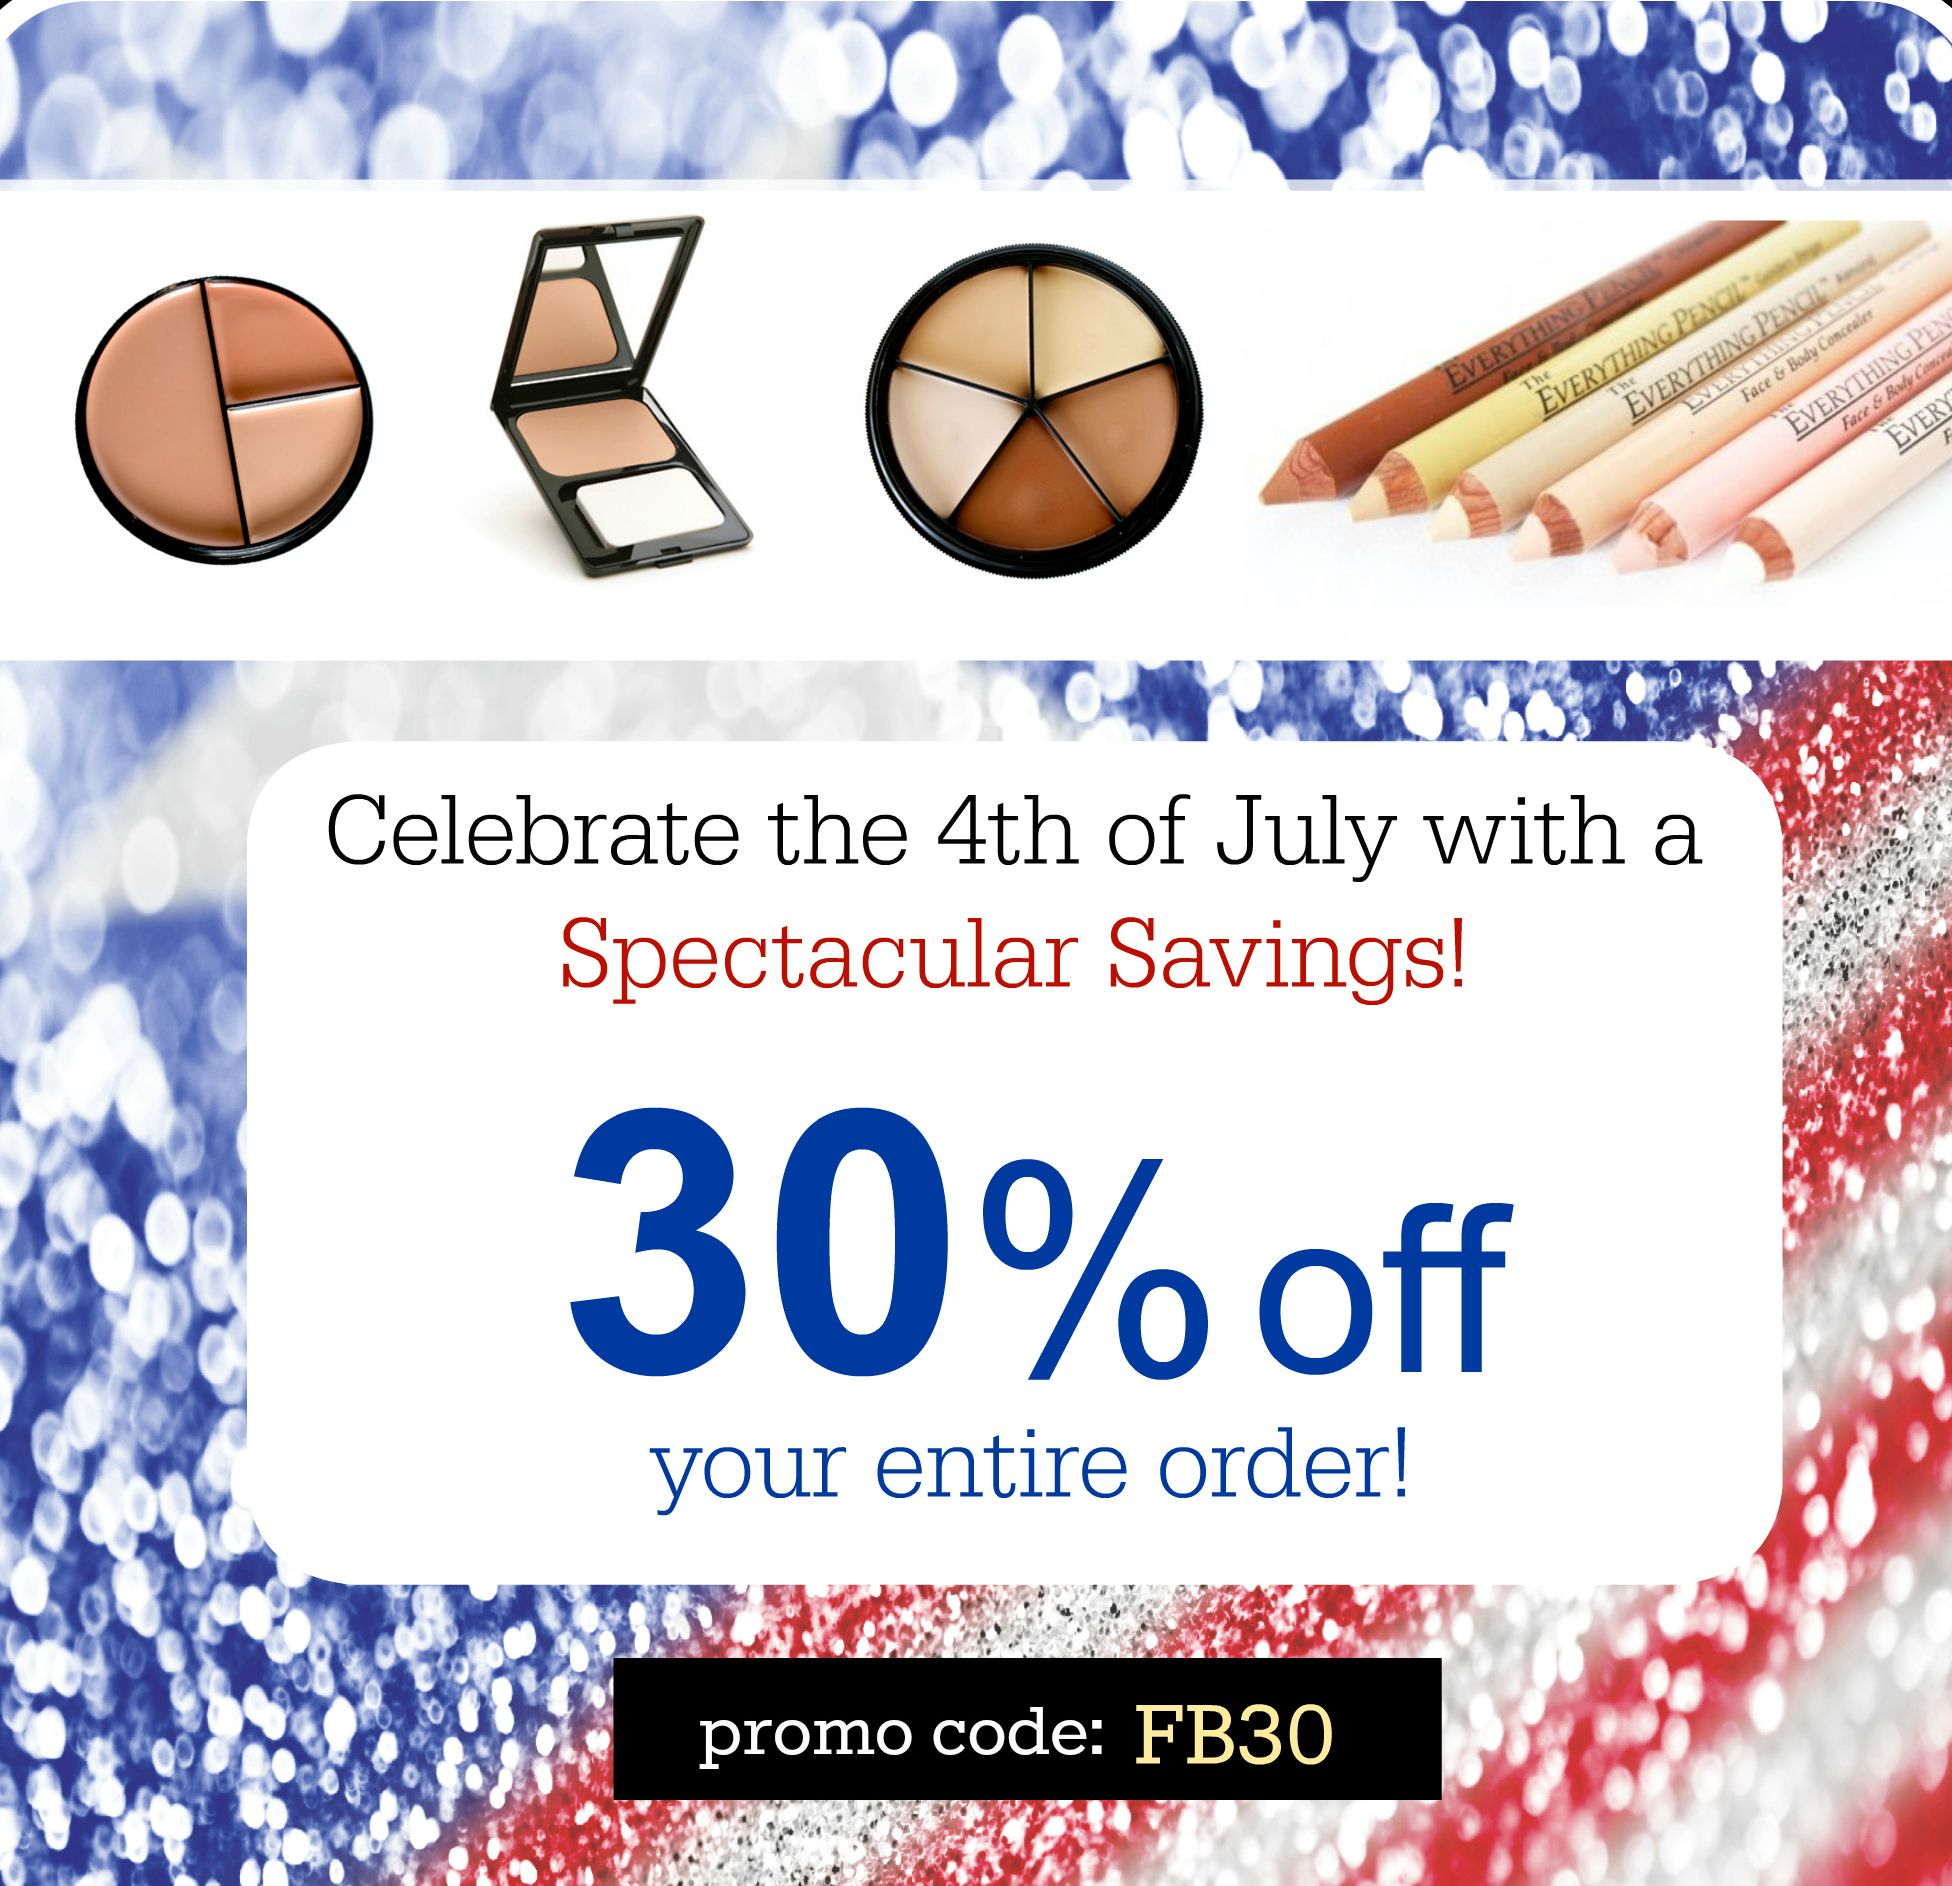 30 off your entire order! makeupsale 4thofjuly